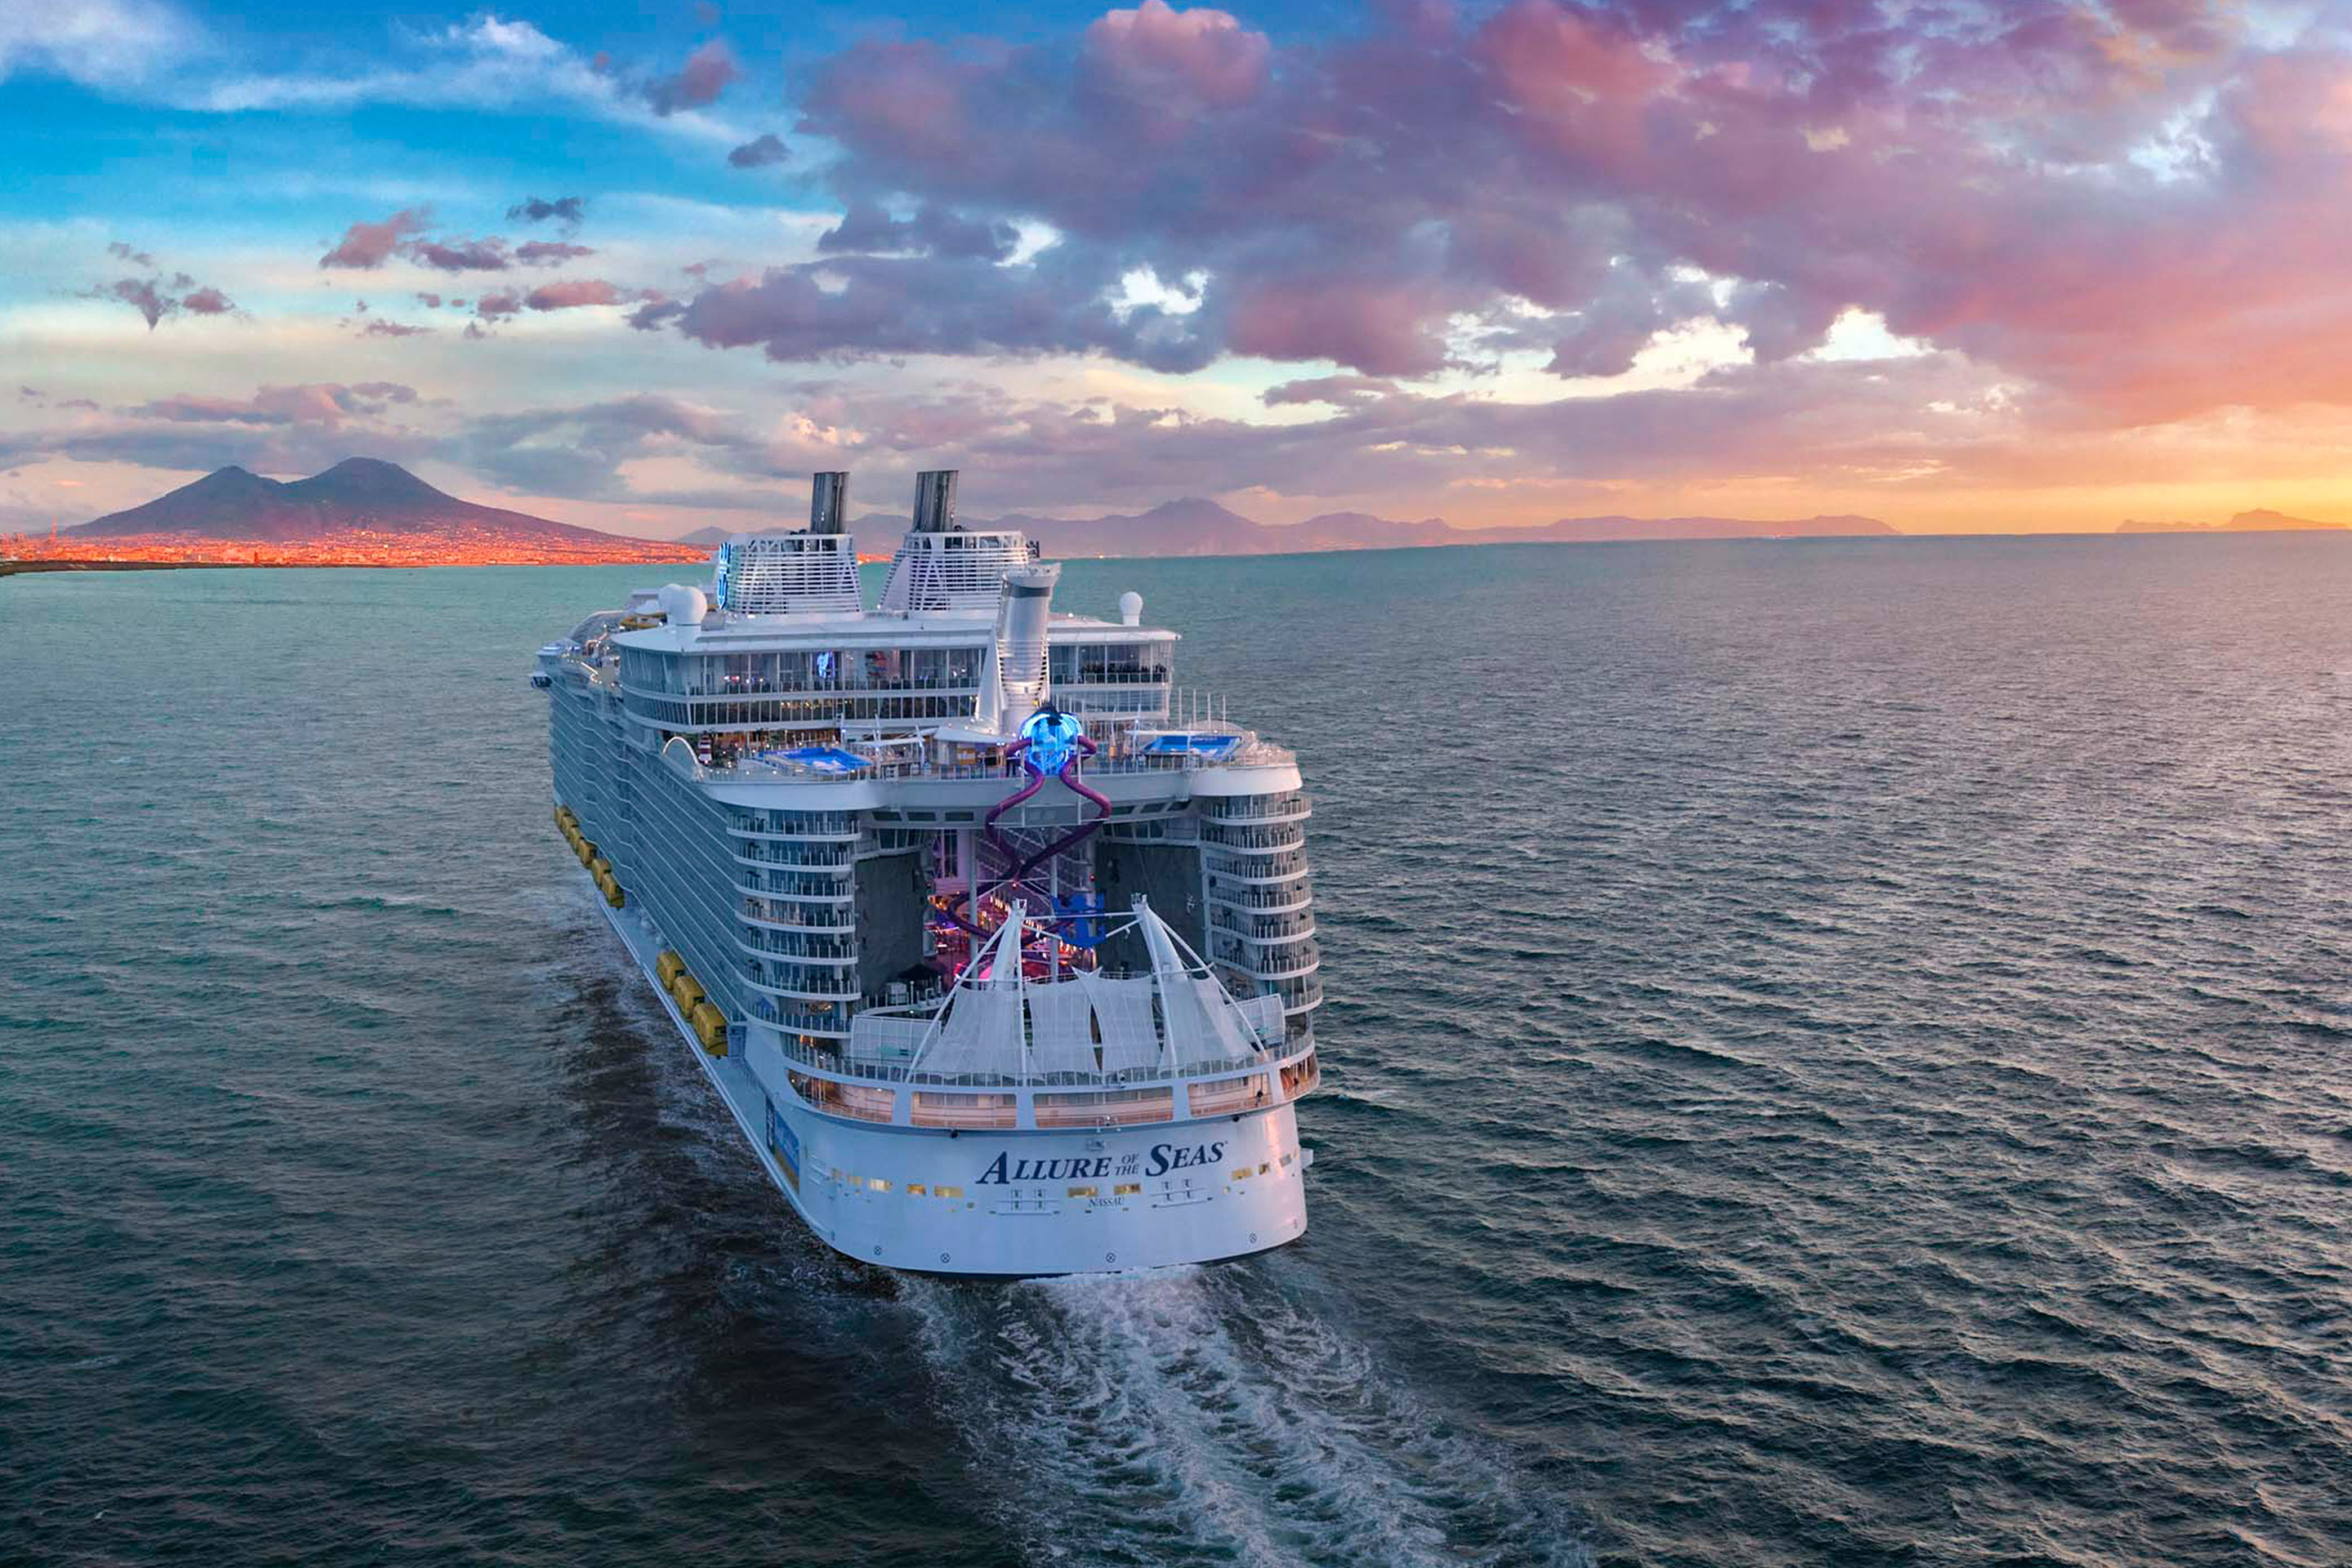 Allure of the Seas in Europa